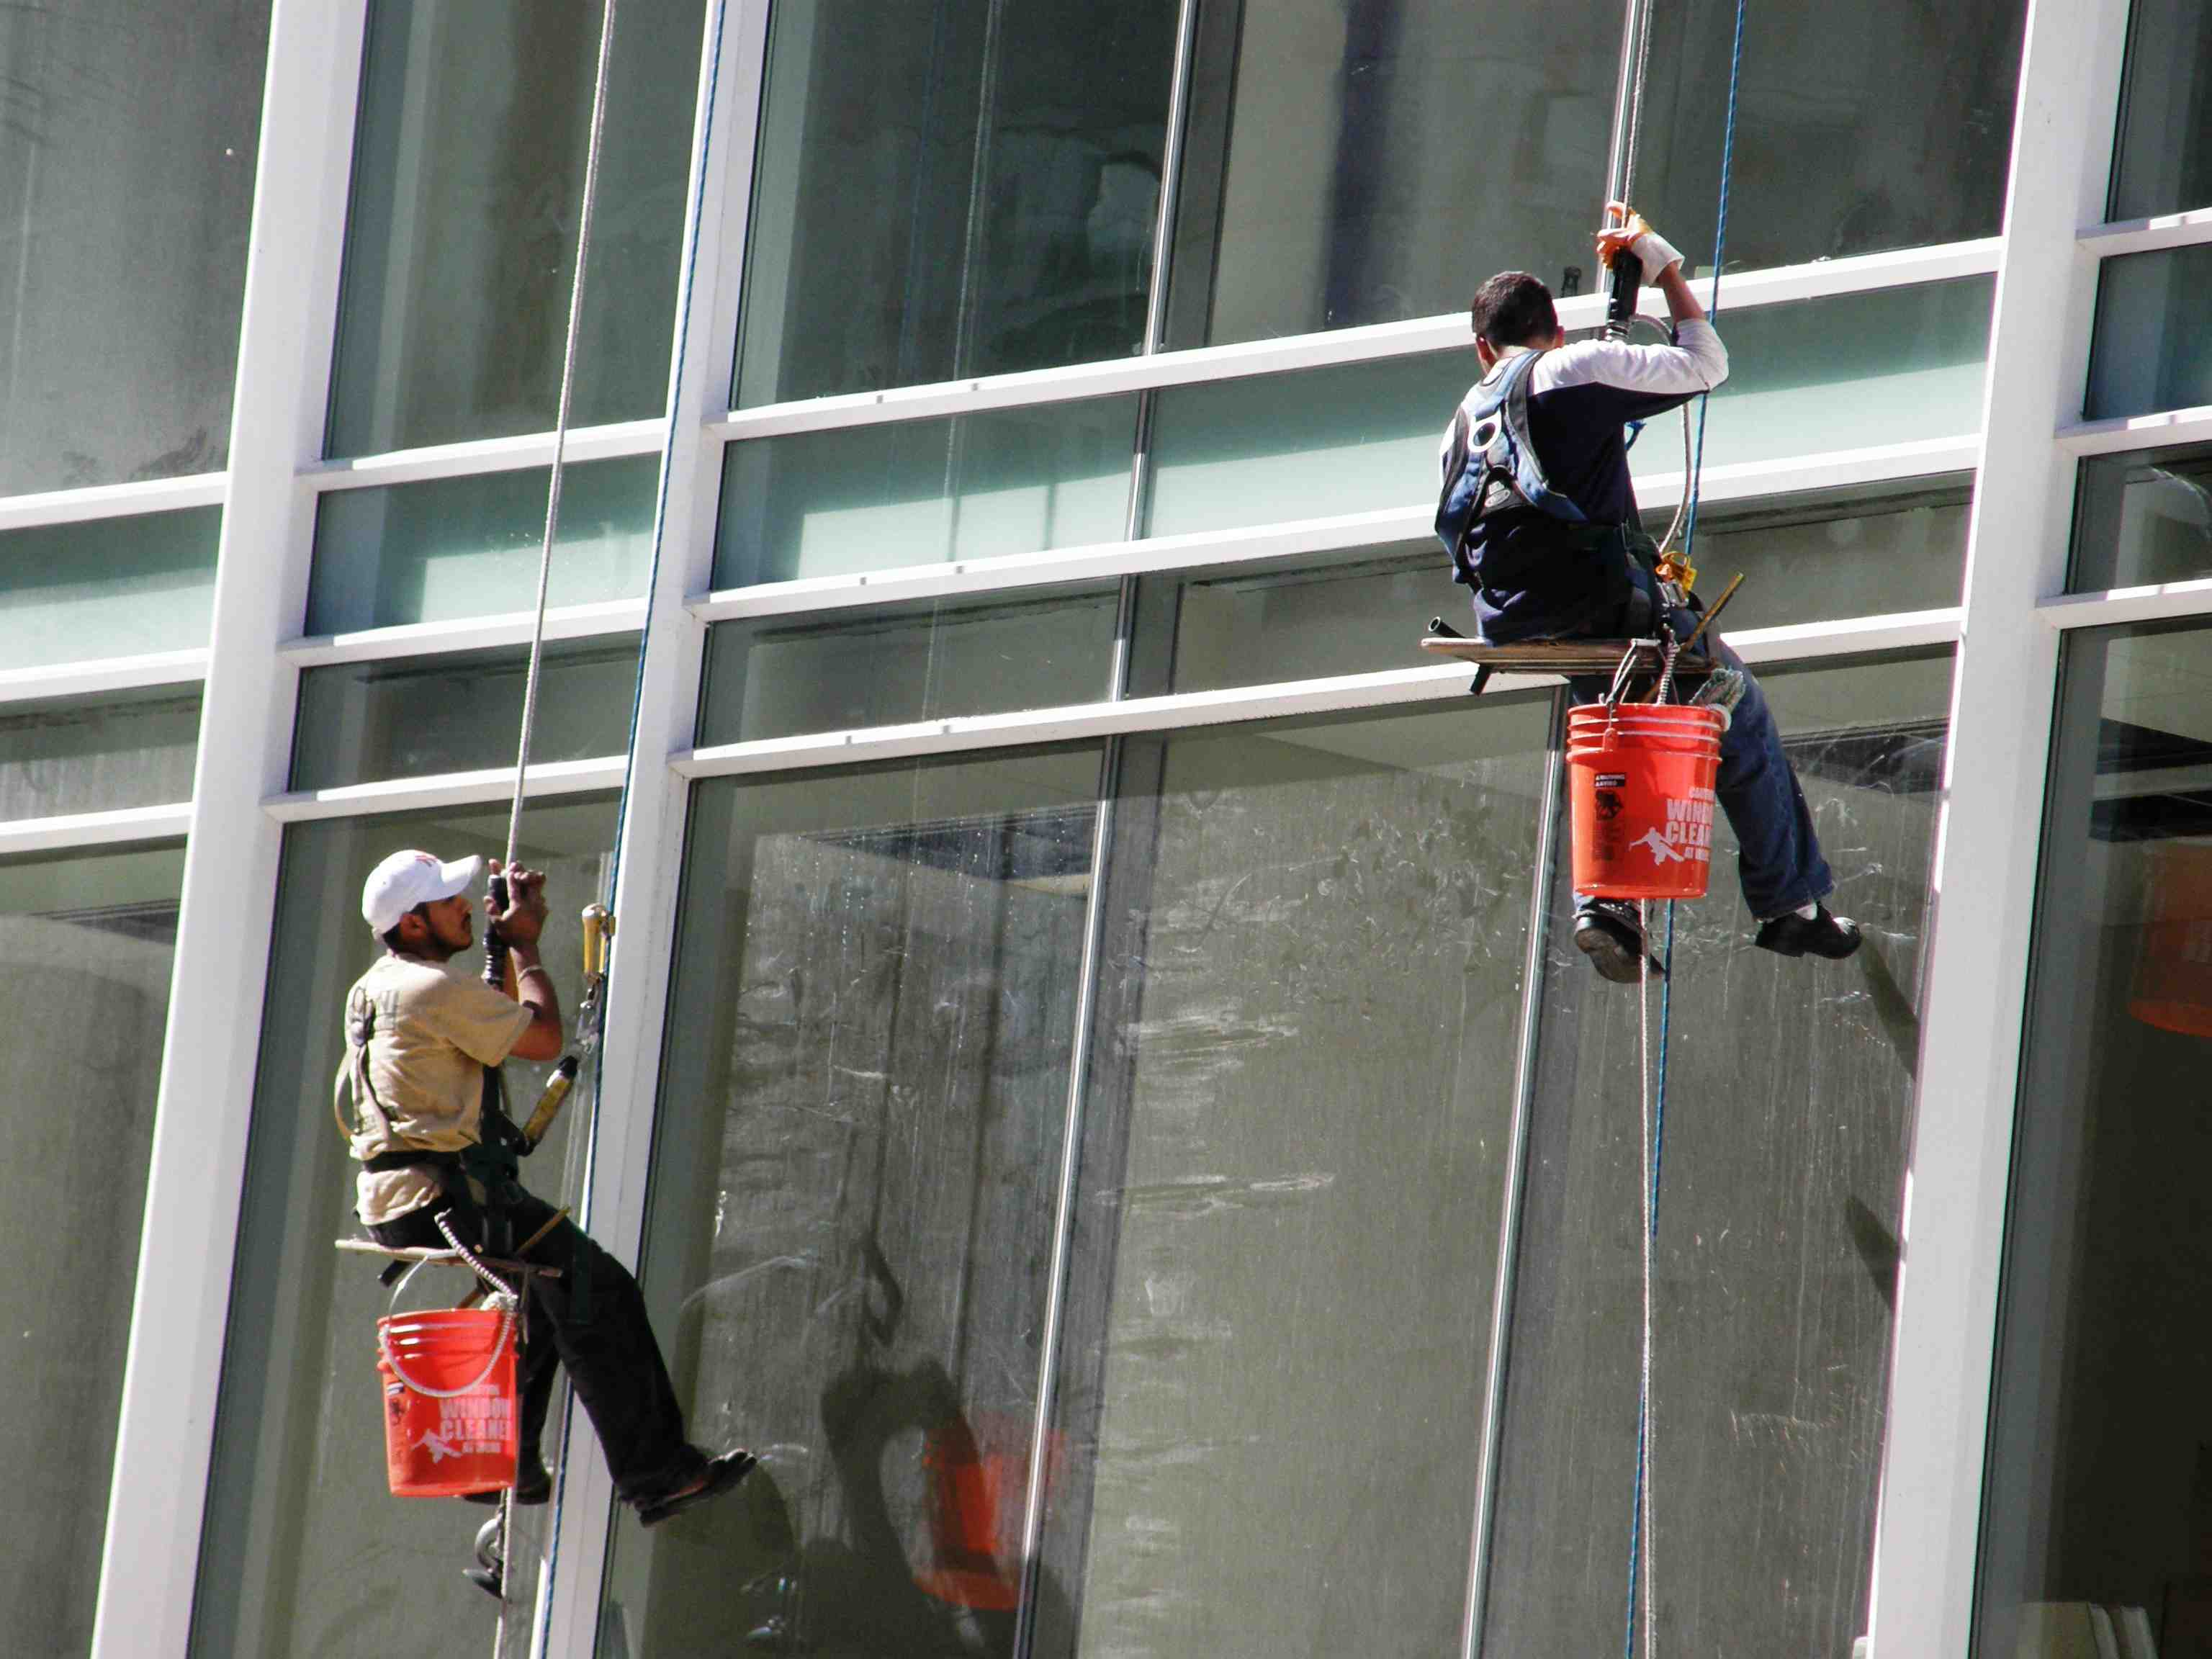 As demand grows for window washing services in New York, safety should ...